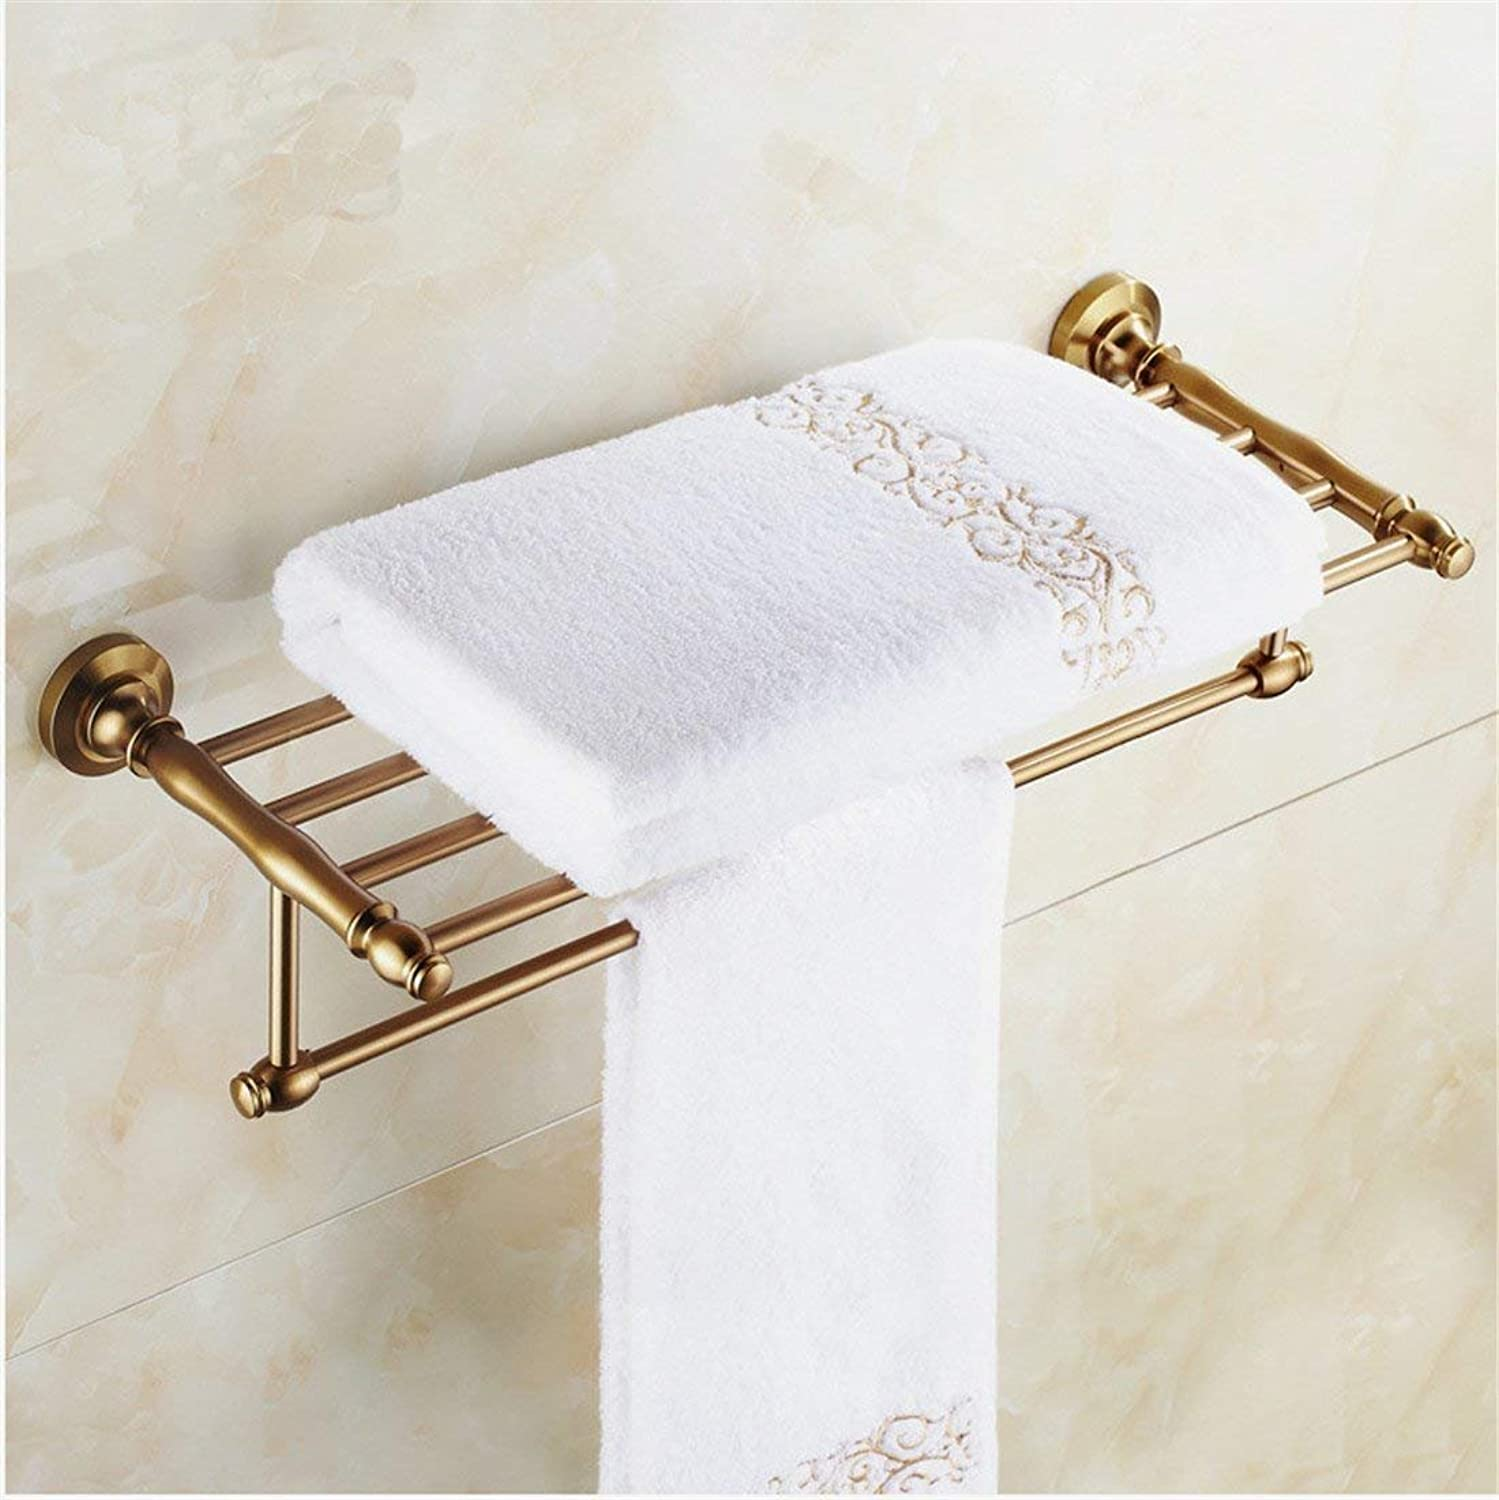 The European Space of The Aluminum Antique Copper Bathroom Accessories Door-soap, Dry-Towels